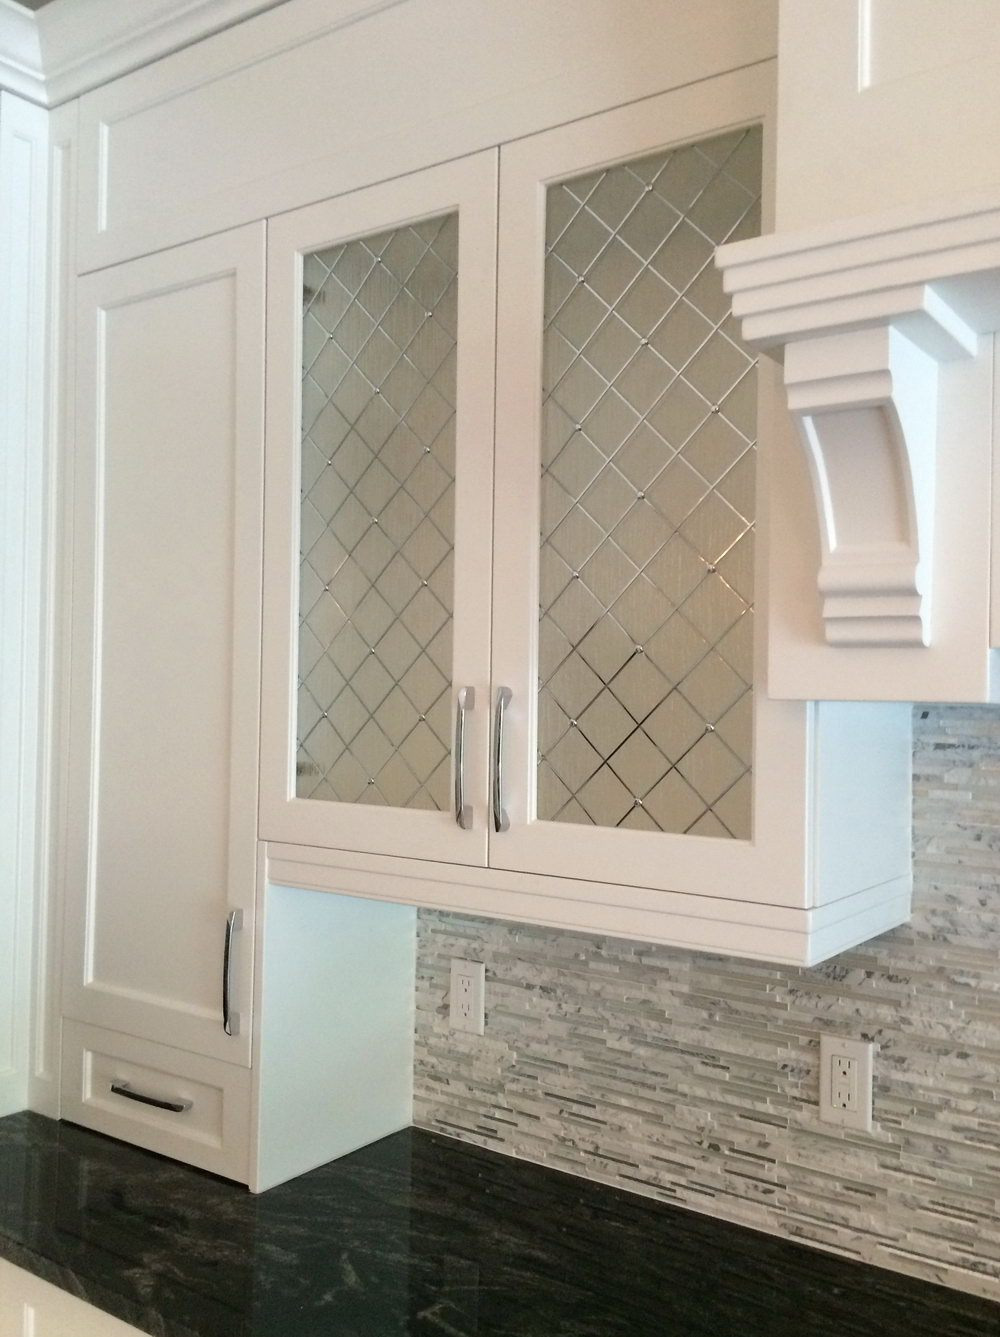 Cabinet Doors with Glass New Beveled Glass Cabinet Doors Cabinet Mullion Inserts Adding